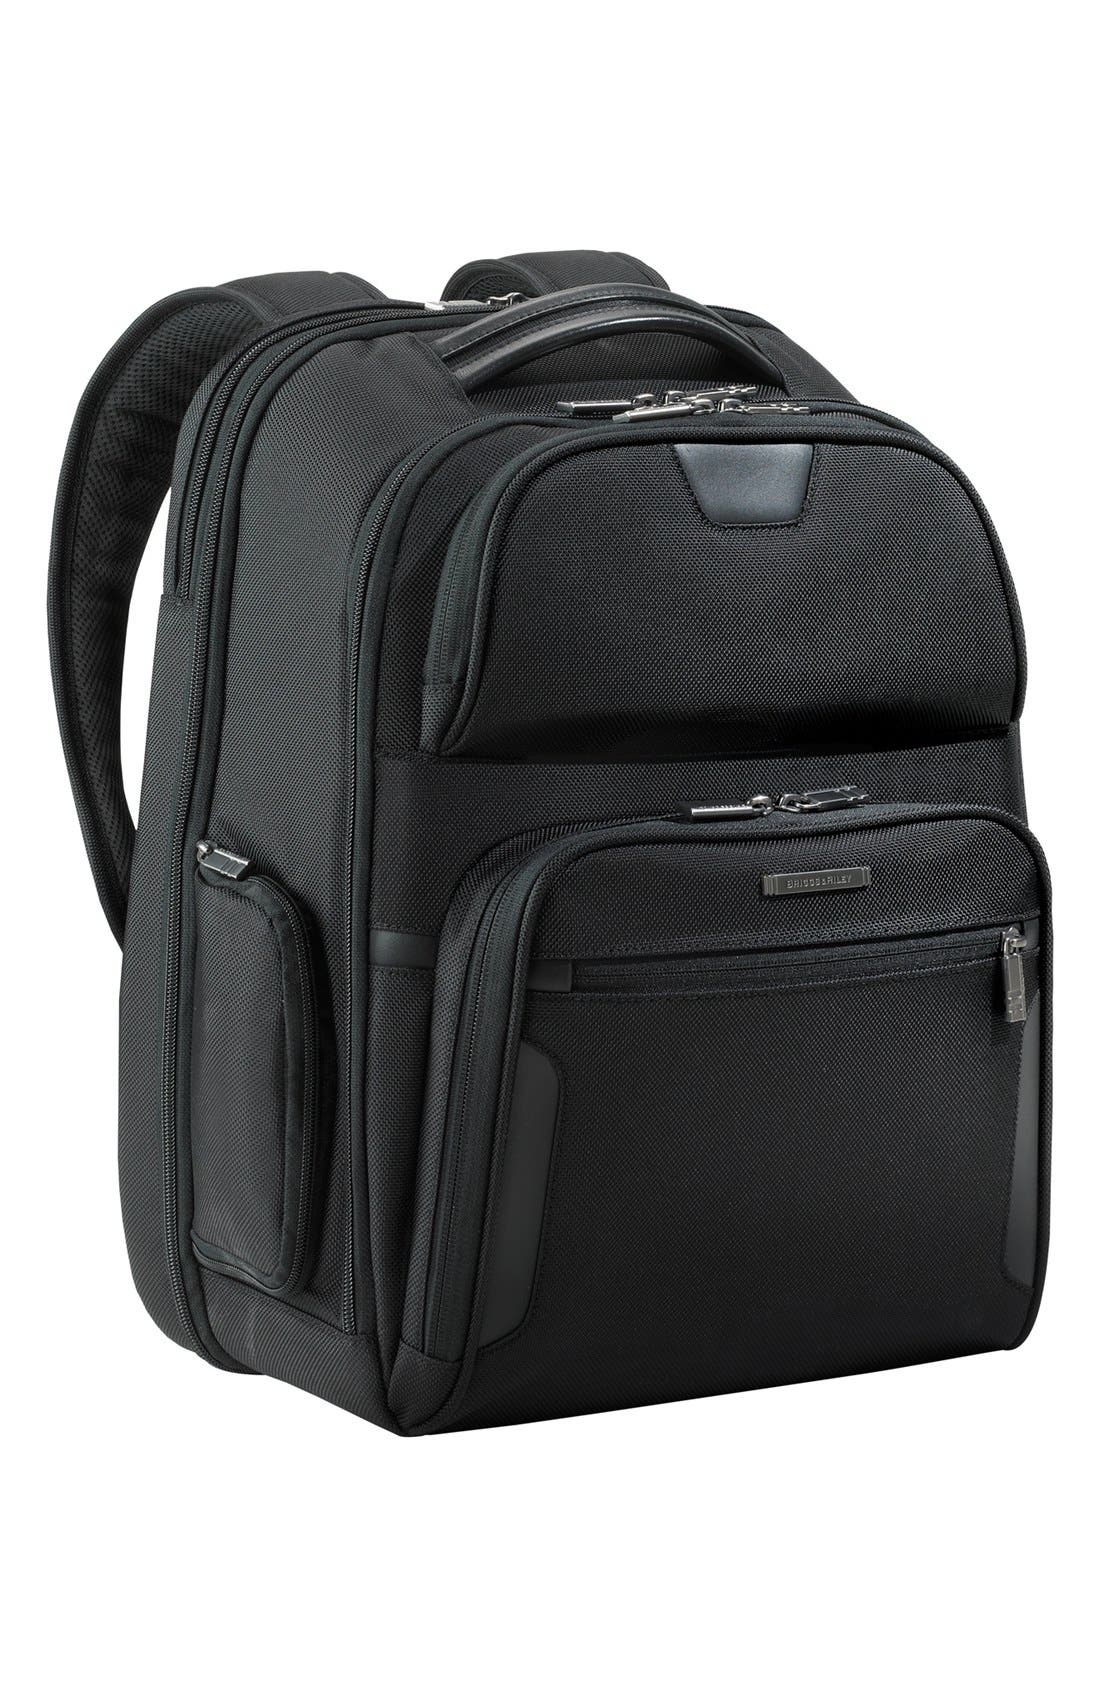 Alternate Image 1 Selected - Briggs & Riley 'Large' Ballistic Nylon Clamshell Backpack